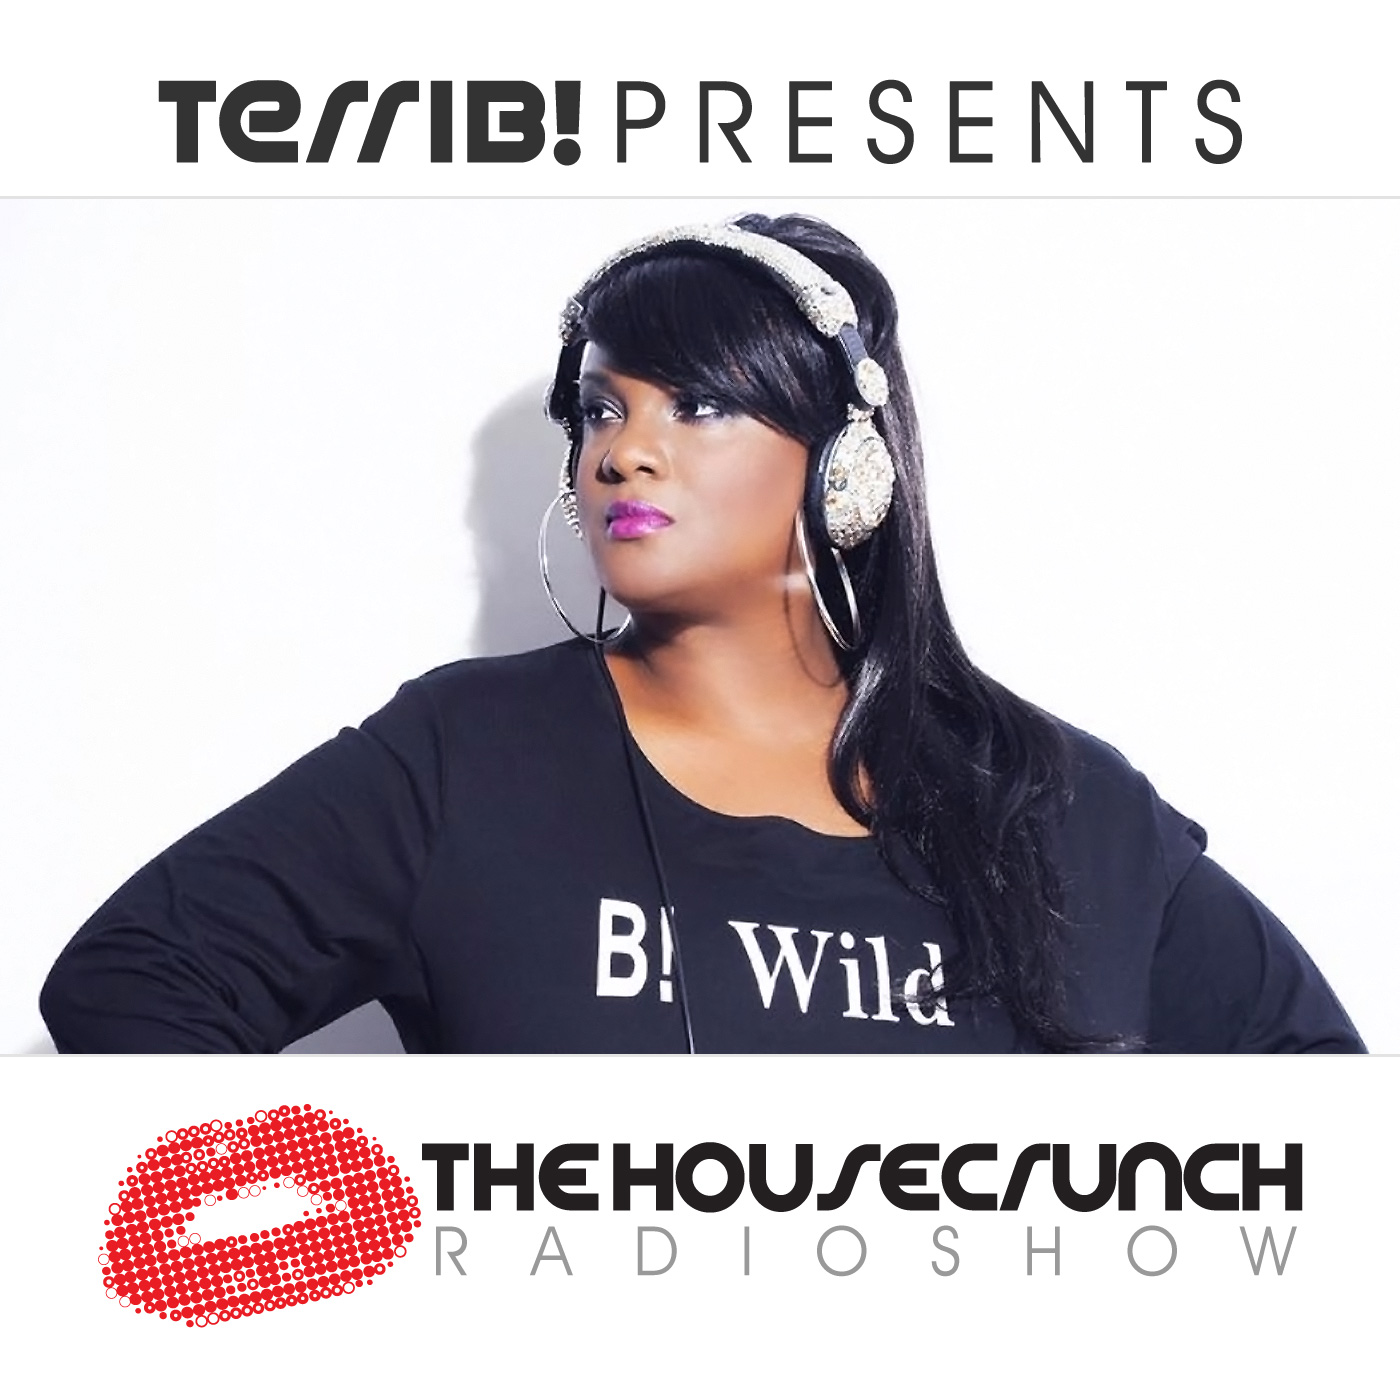 The HouseCrunch Radio Show Episode #221 Terri B! In the Mix